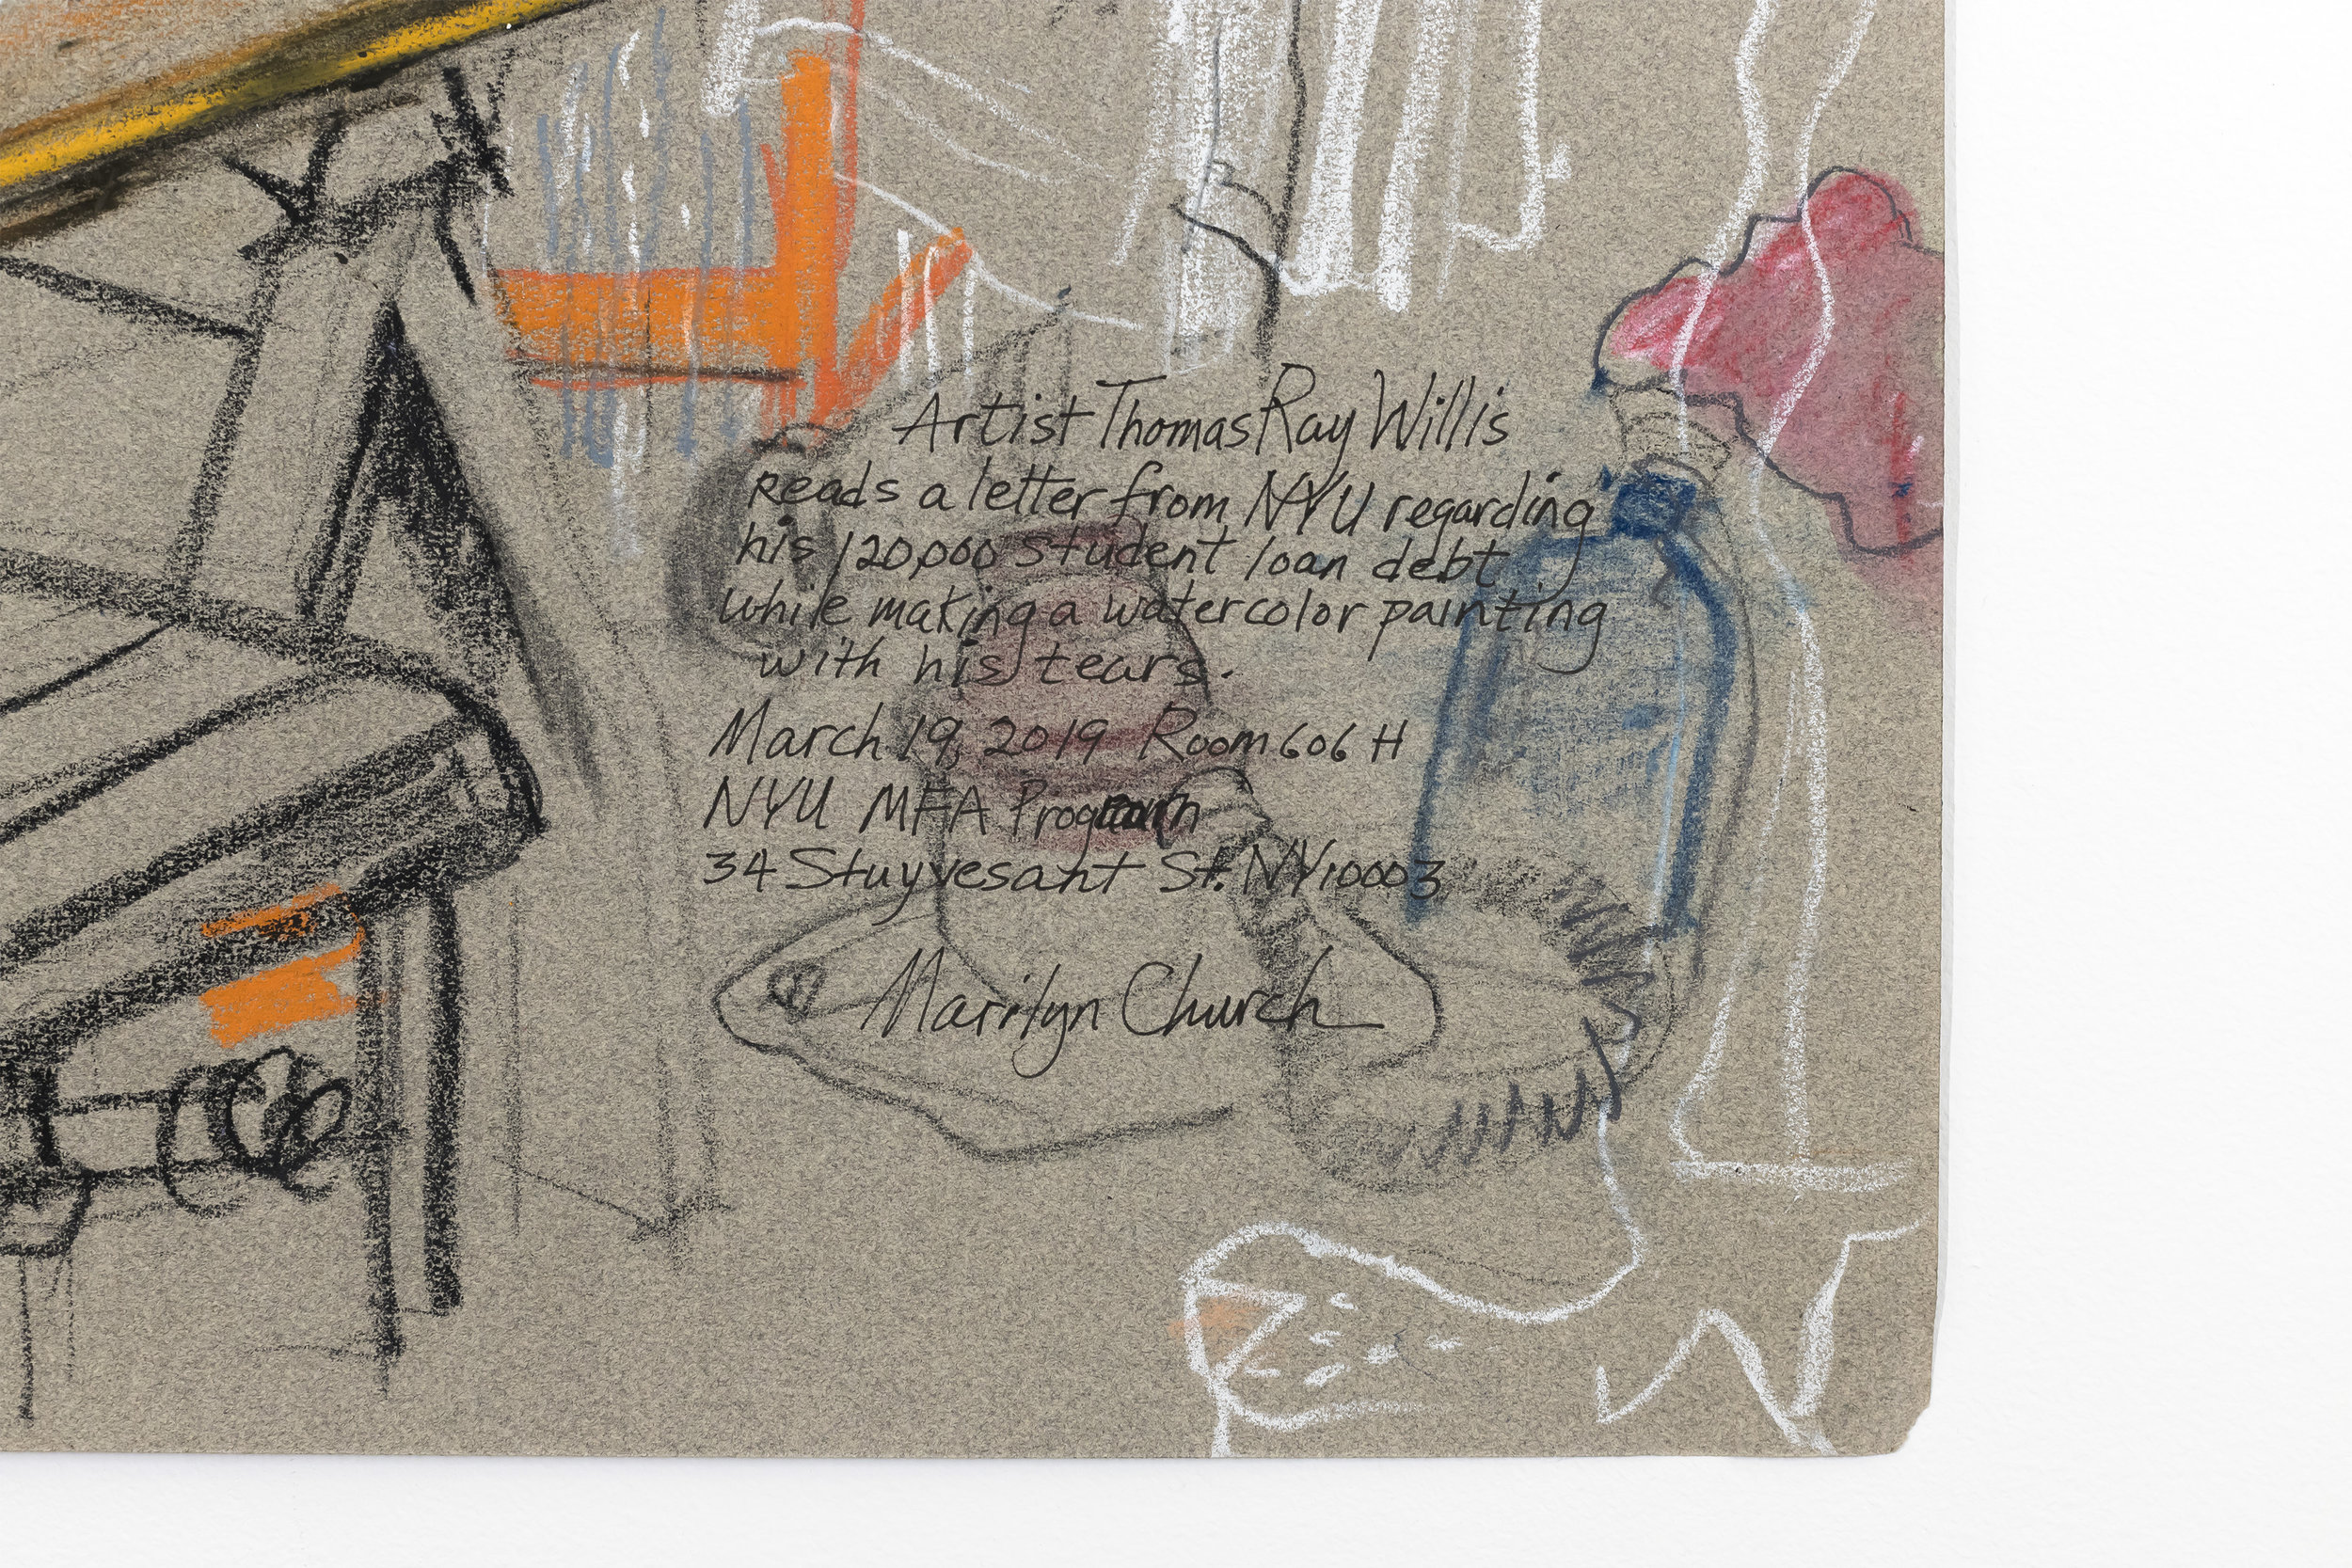 Thomas_Ray_Willis_Marilyn_Church_Courtroom_Sketch_Artist_Tear_Paintings_Draws_While_Crying_NYU_2019_003(2).jpg